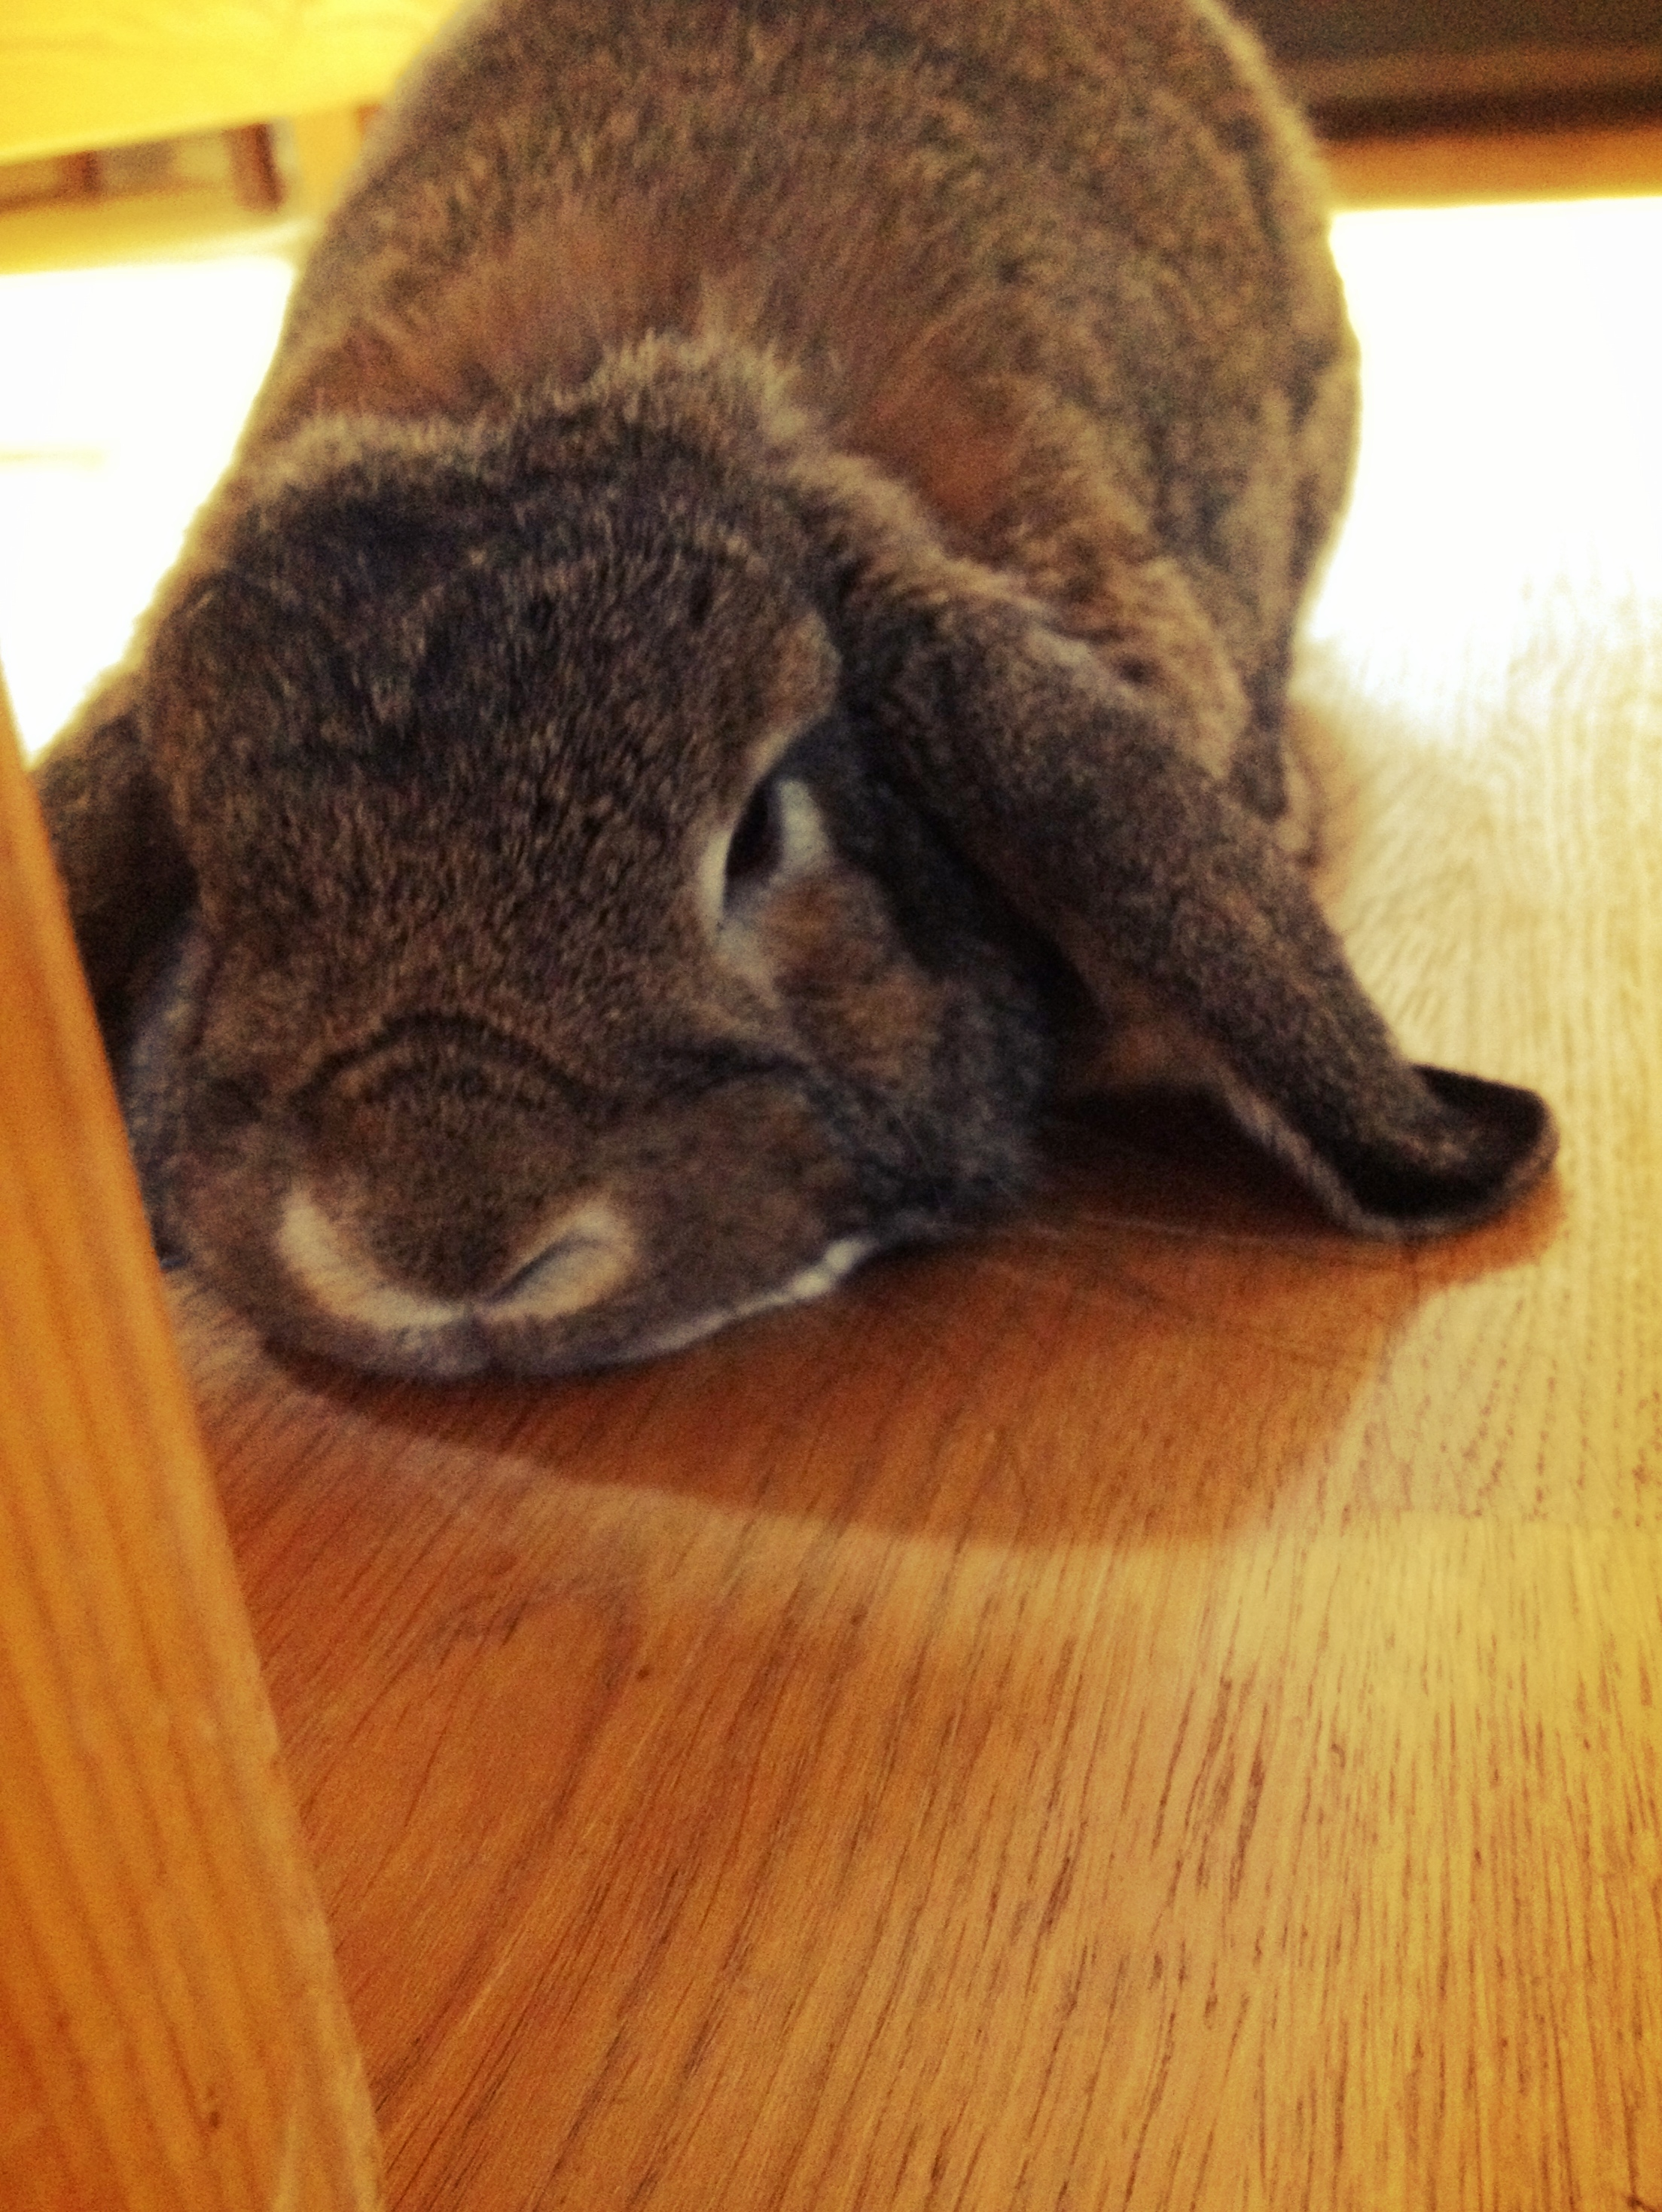 Bunny Puts Her Head Down for Petting